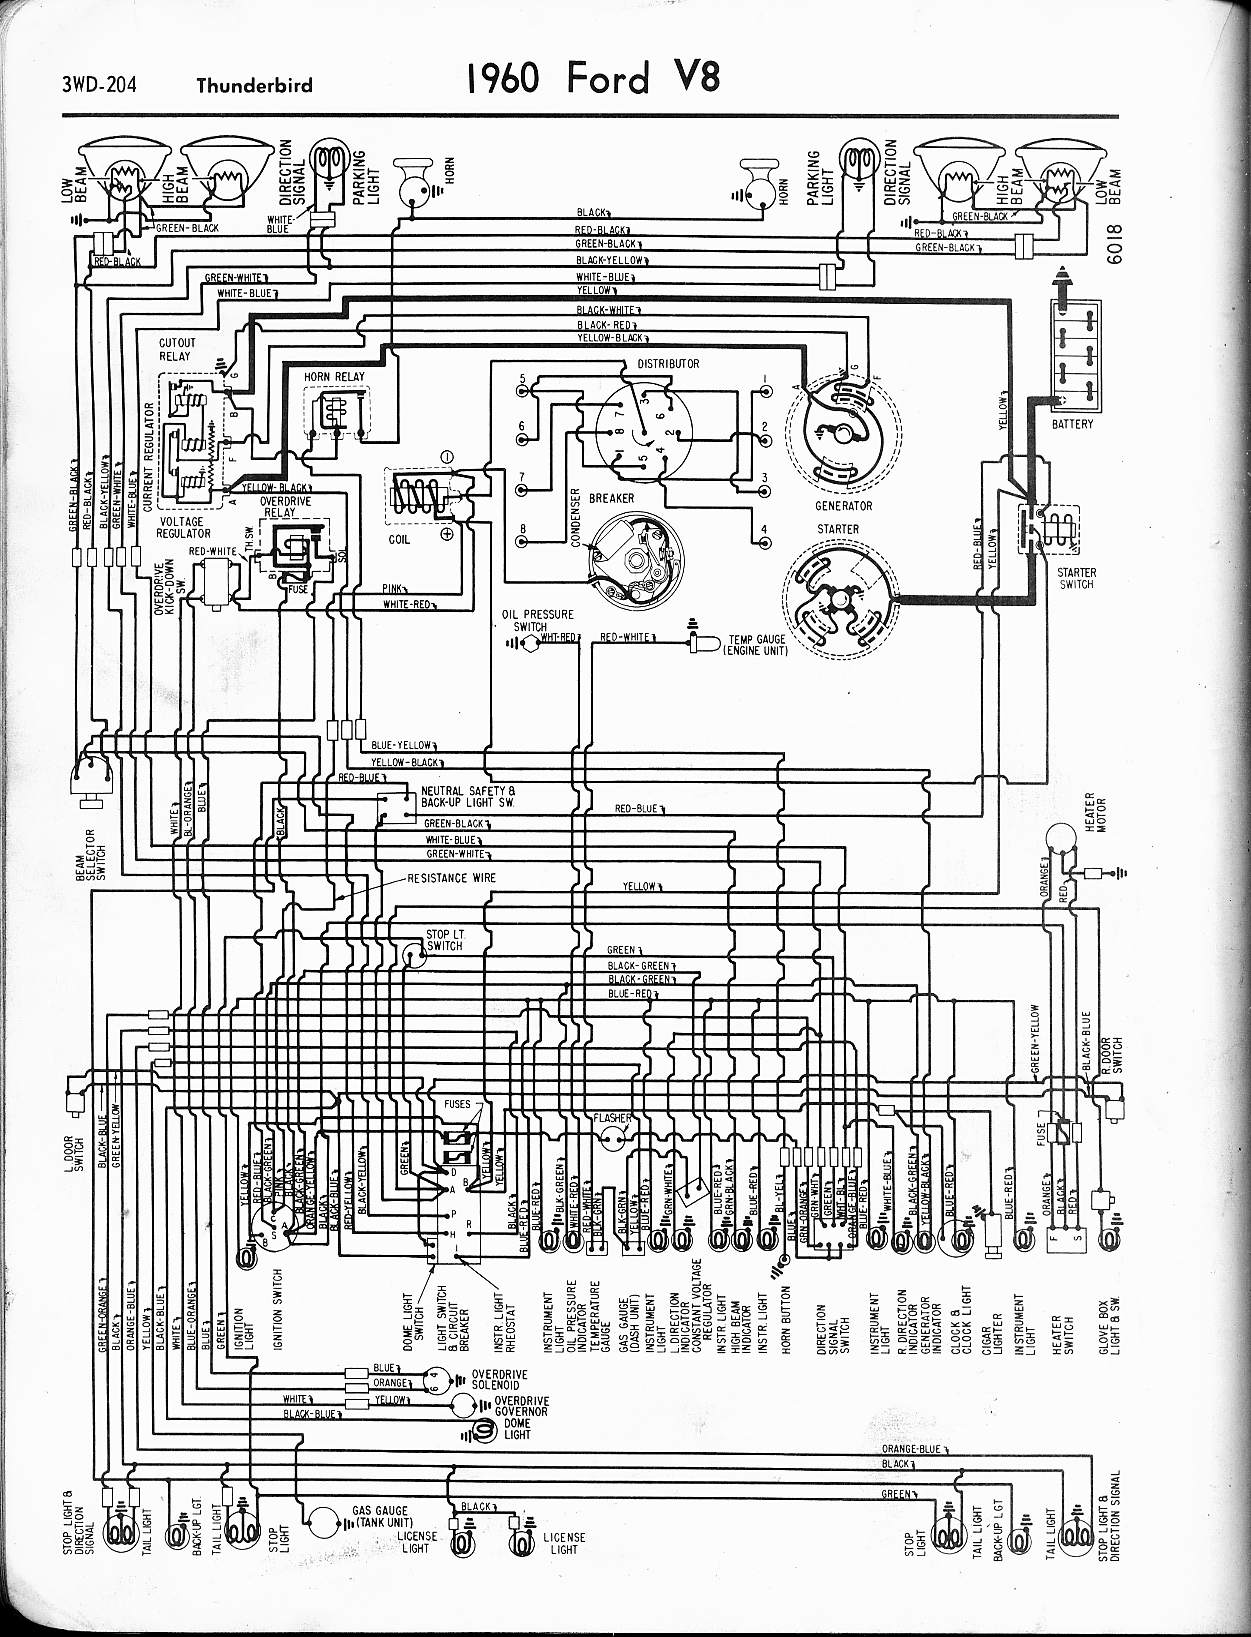 57-65 Ford Wiring DiagramsThe Old Car Manual Project